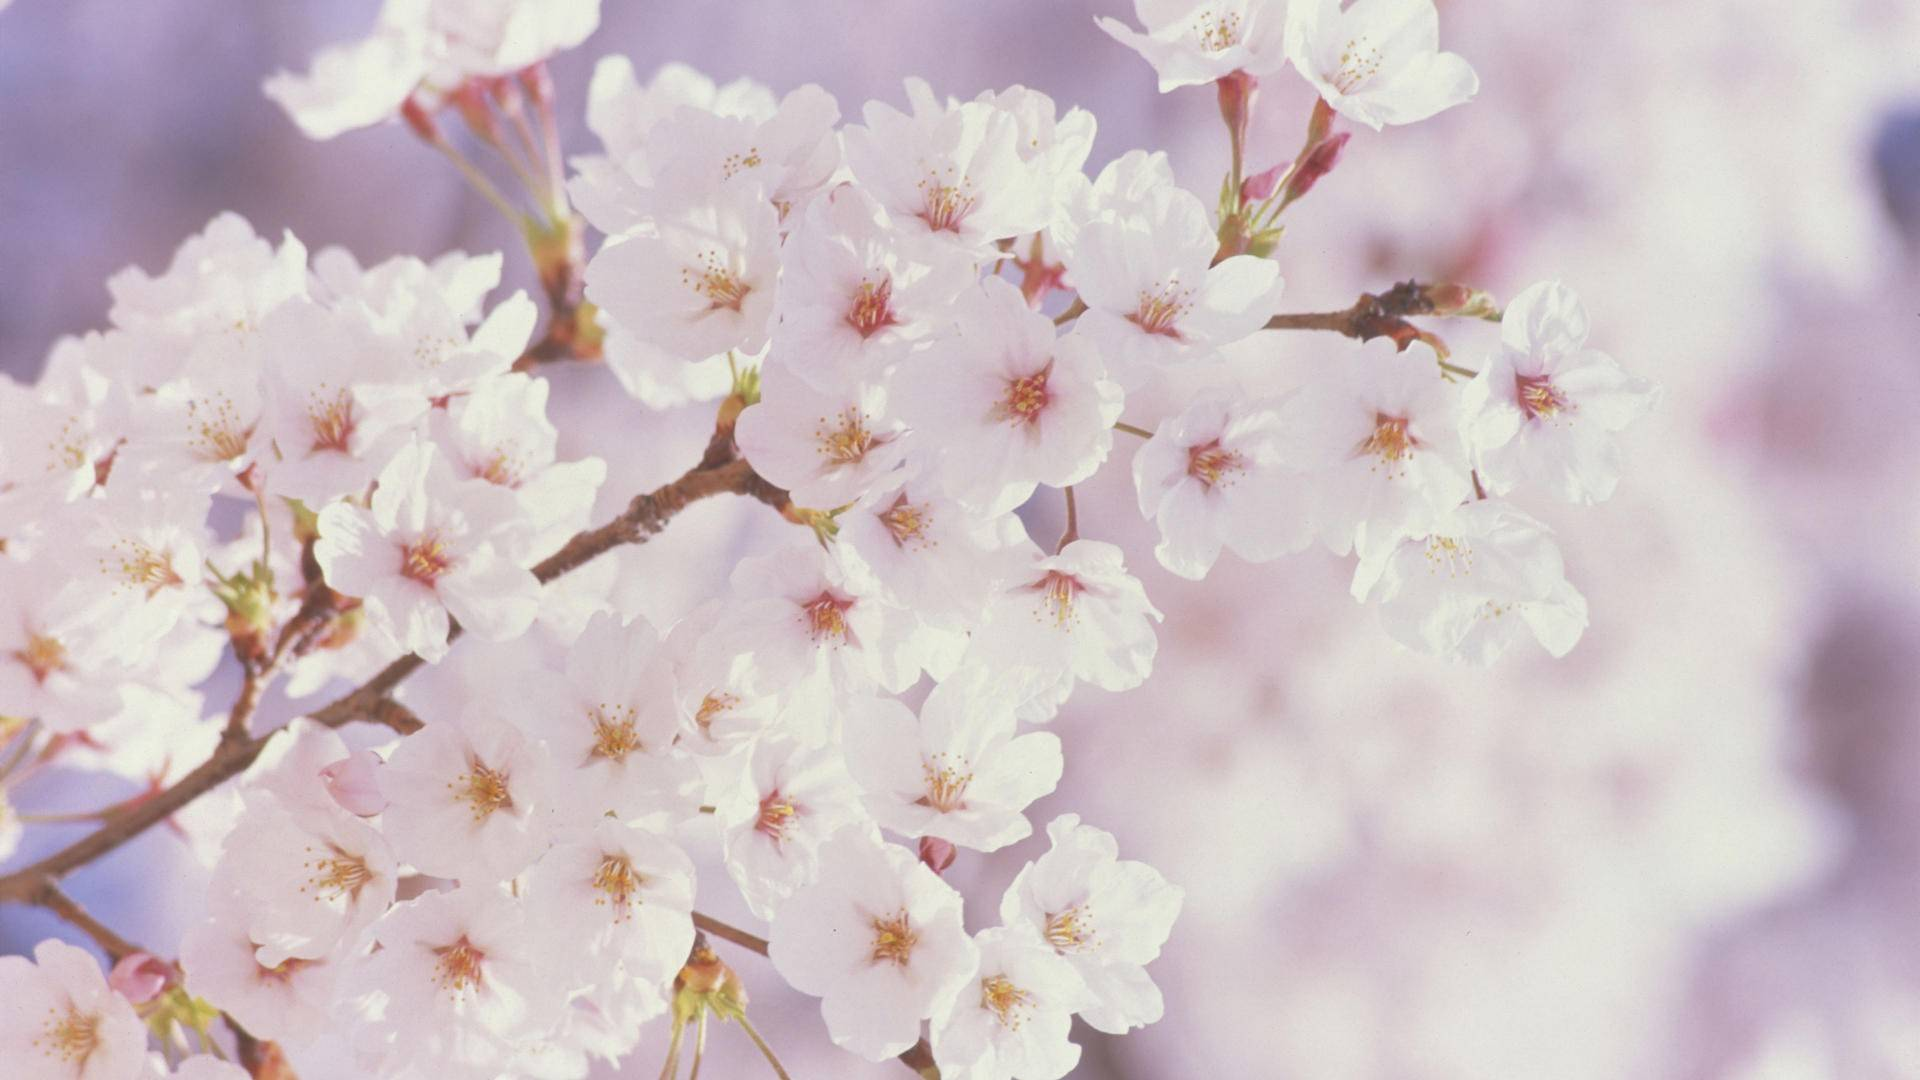 Cherry Blossom Spring Wallpapers ID937176